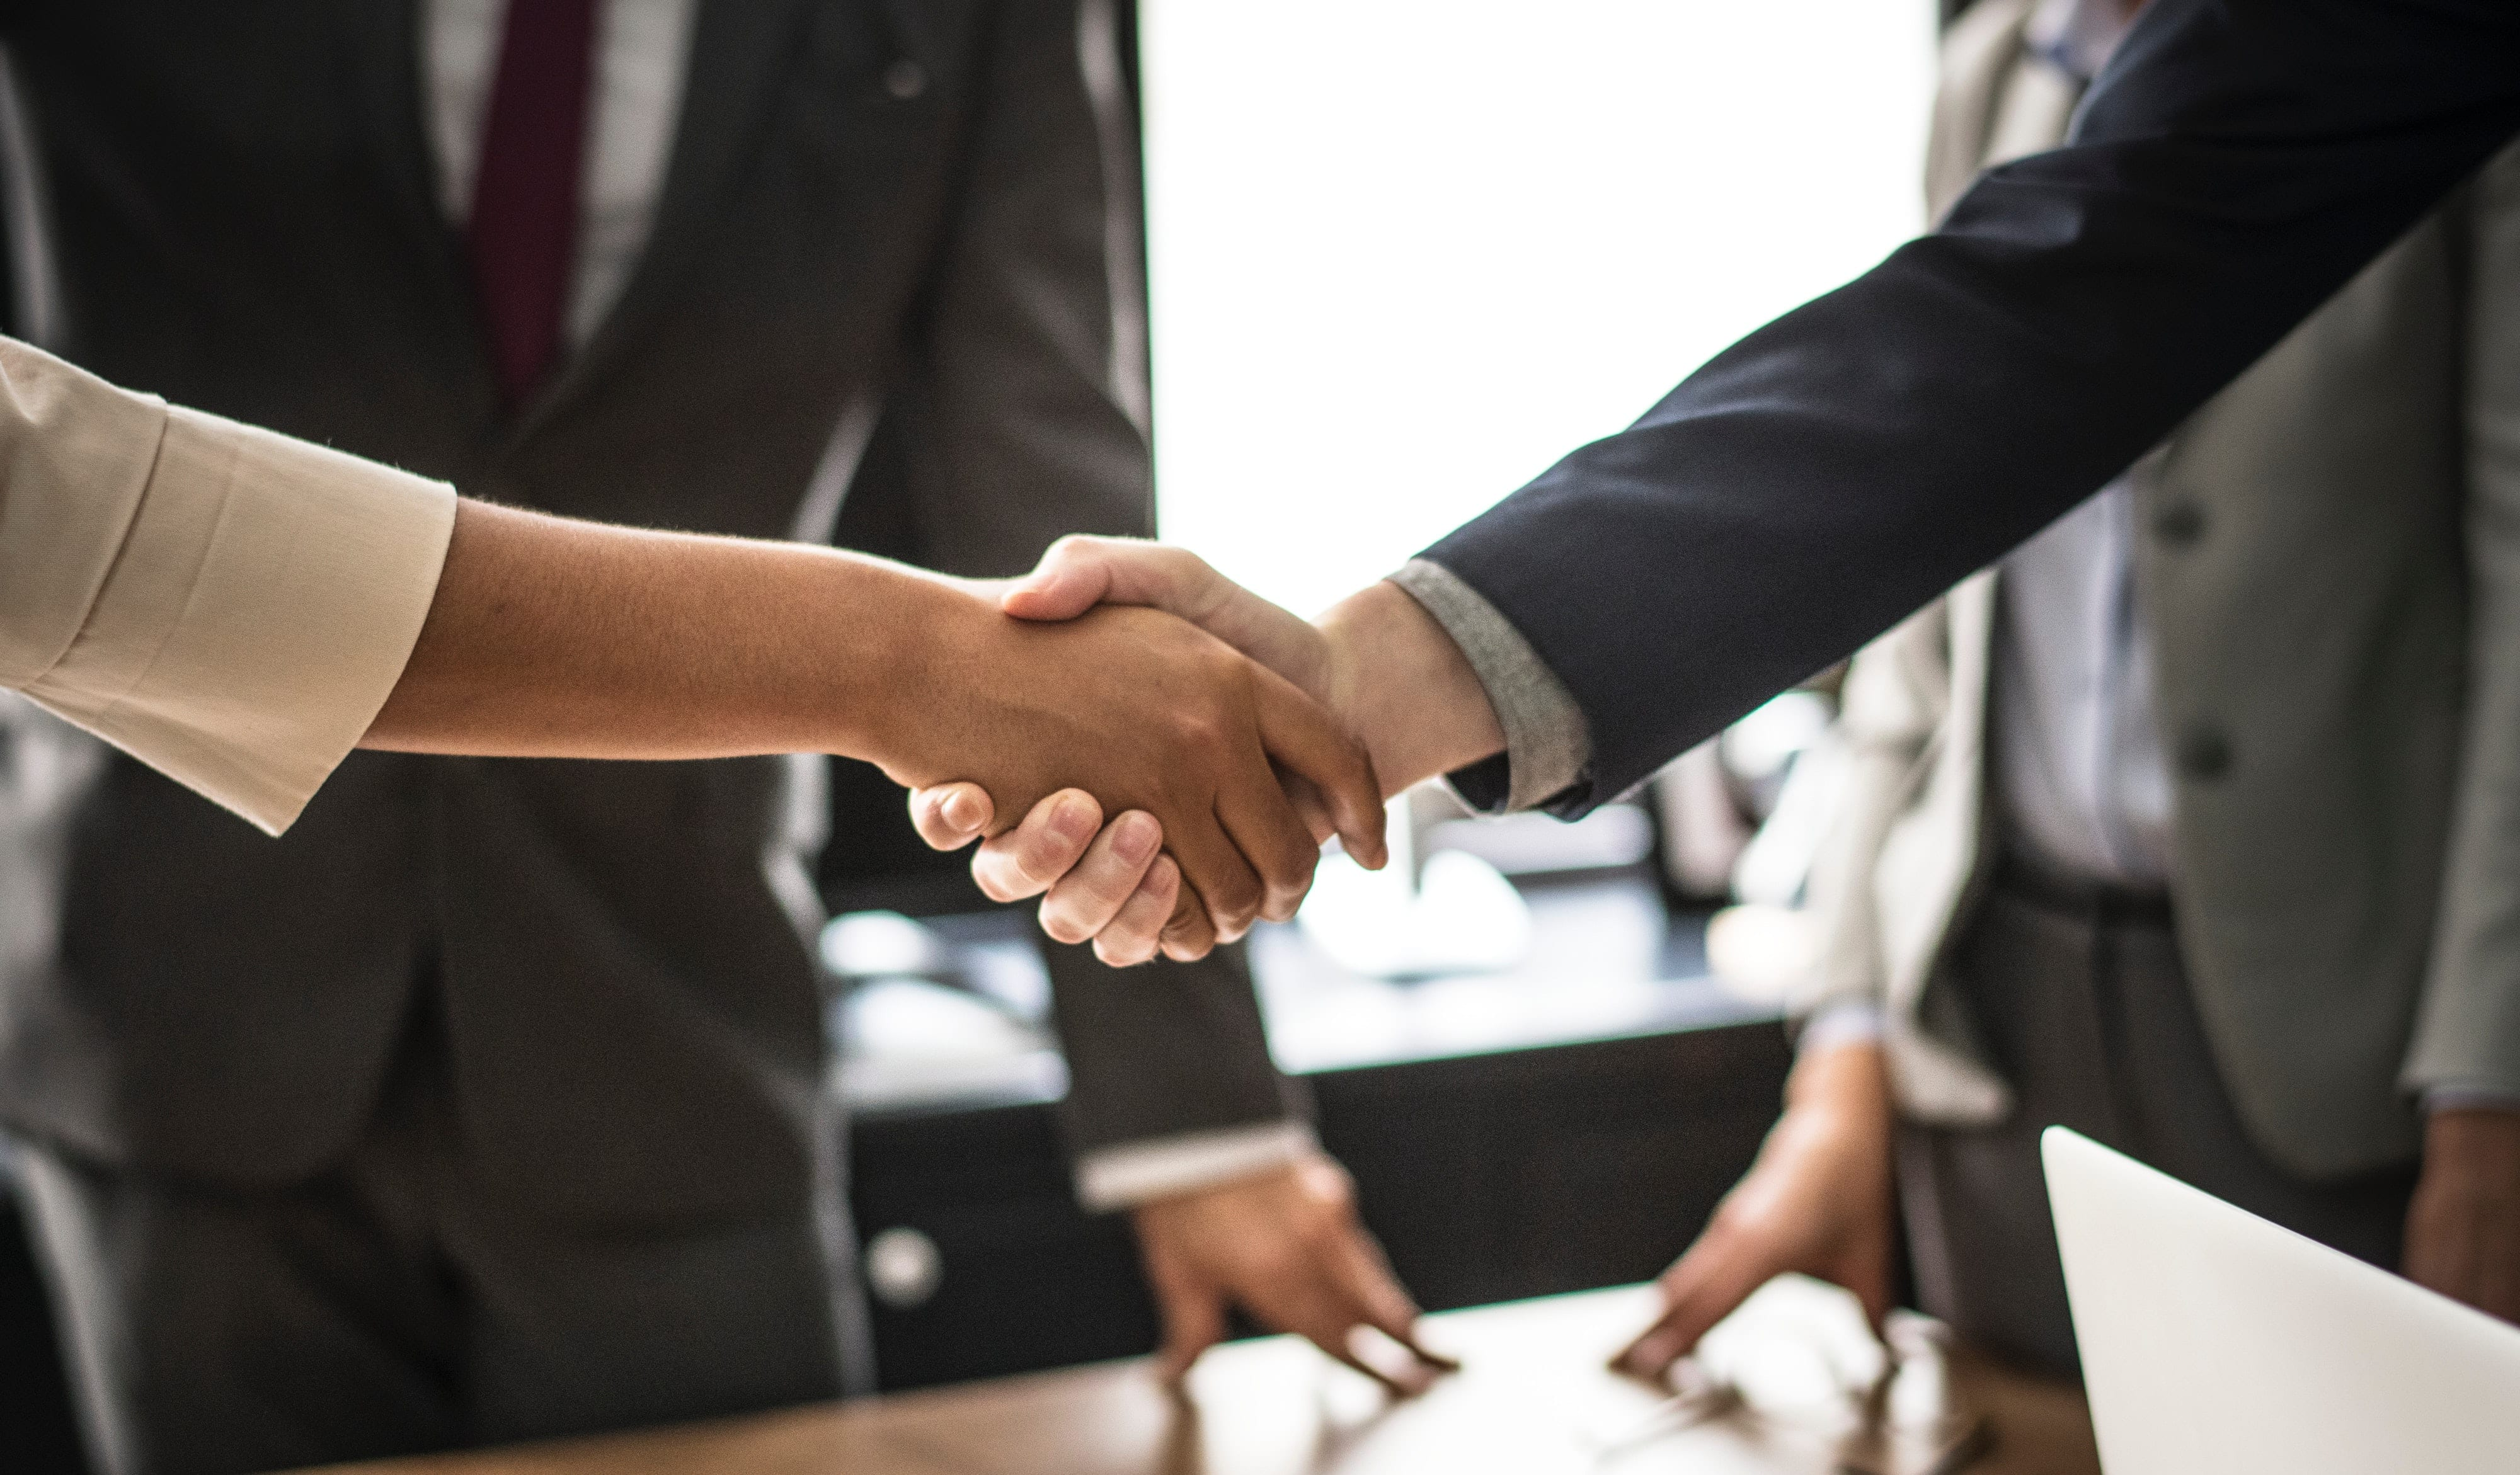 group of business professionals shaking hands while others wait in the background